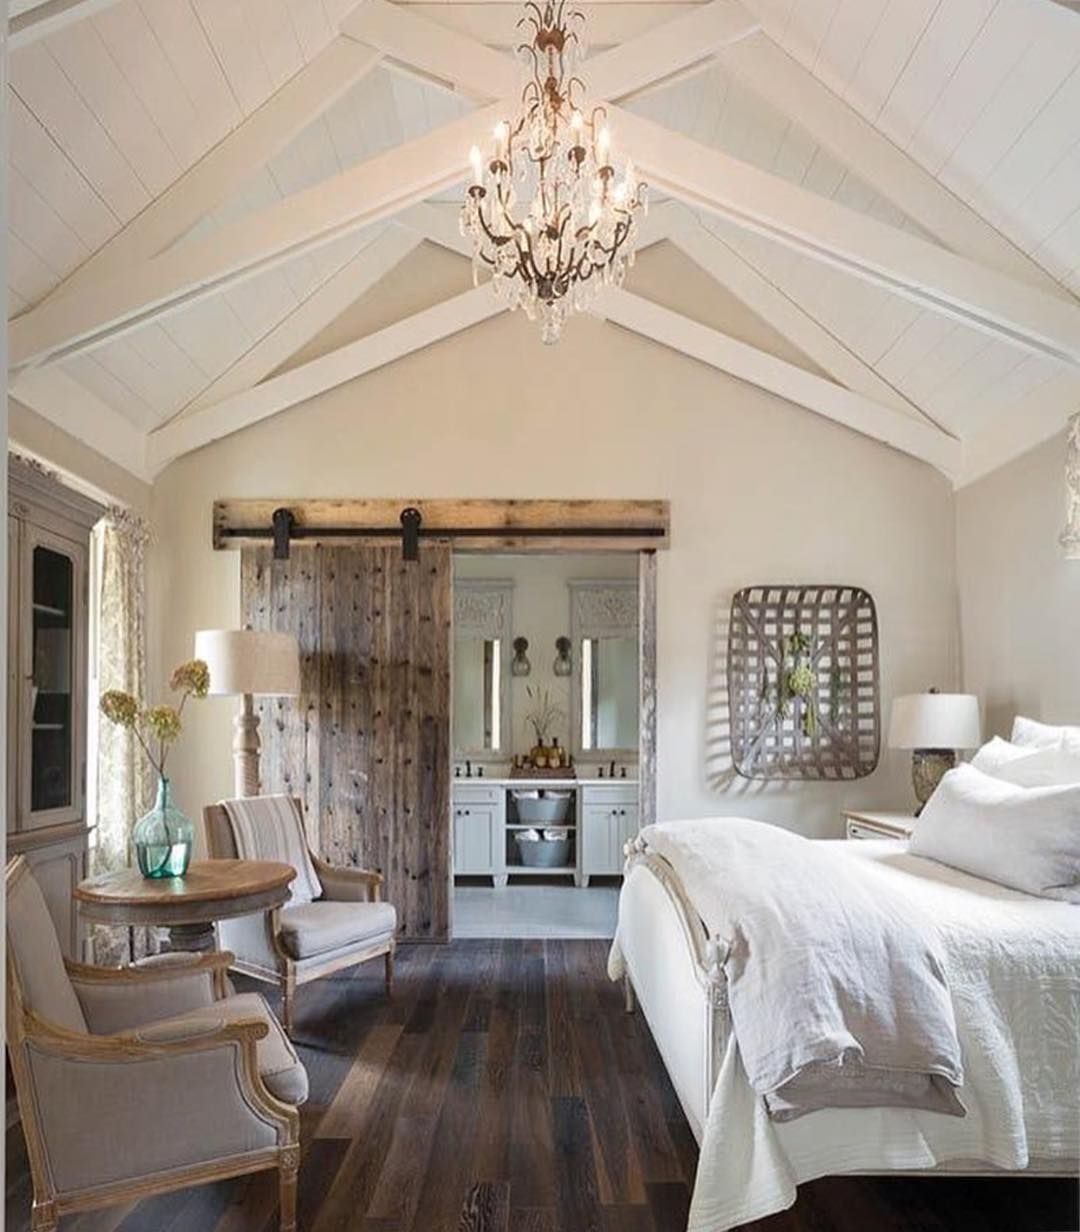 Master bedroom bathroom  Dream bedroom  Home Sweet Home  Pinterest  Bedrooms Master